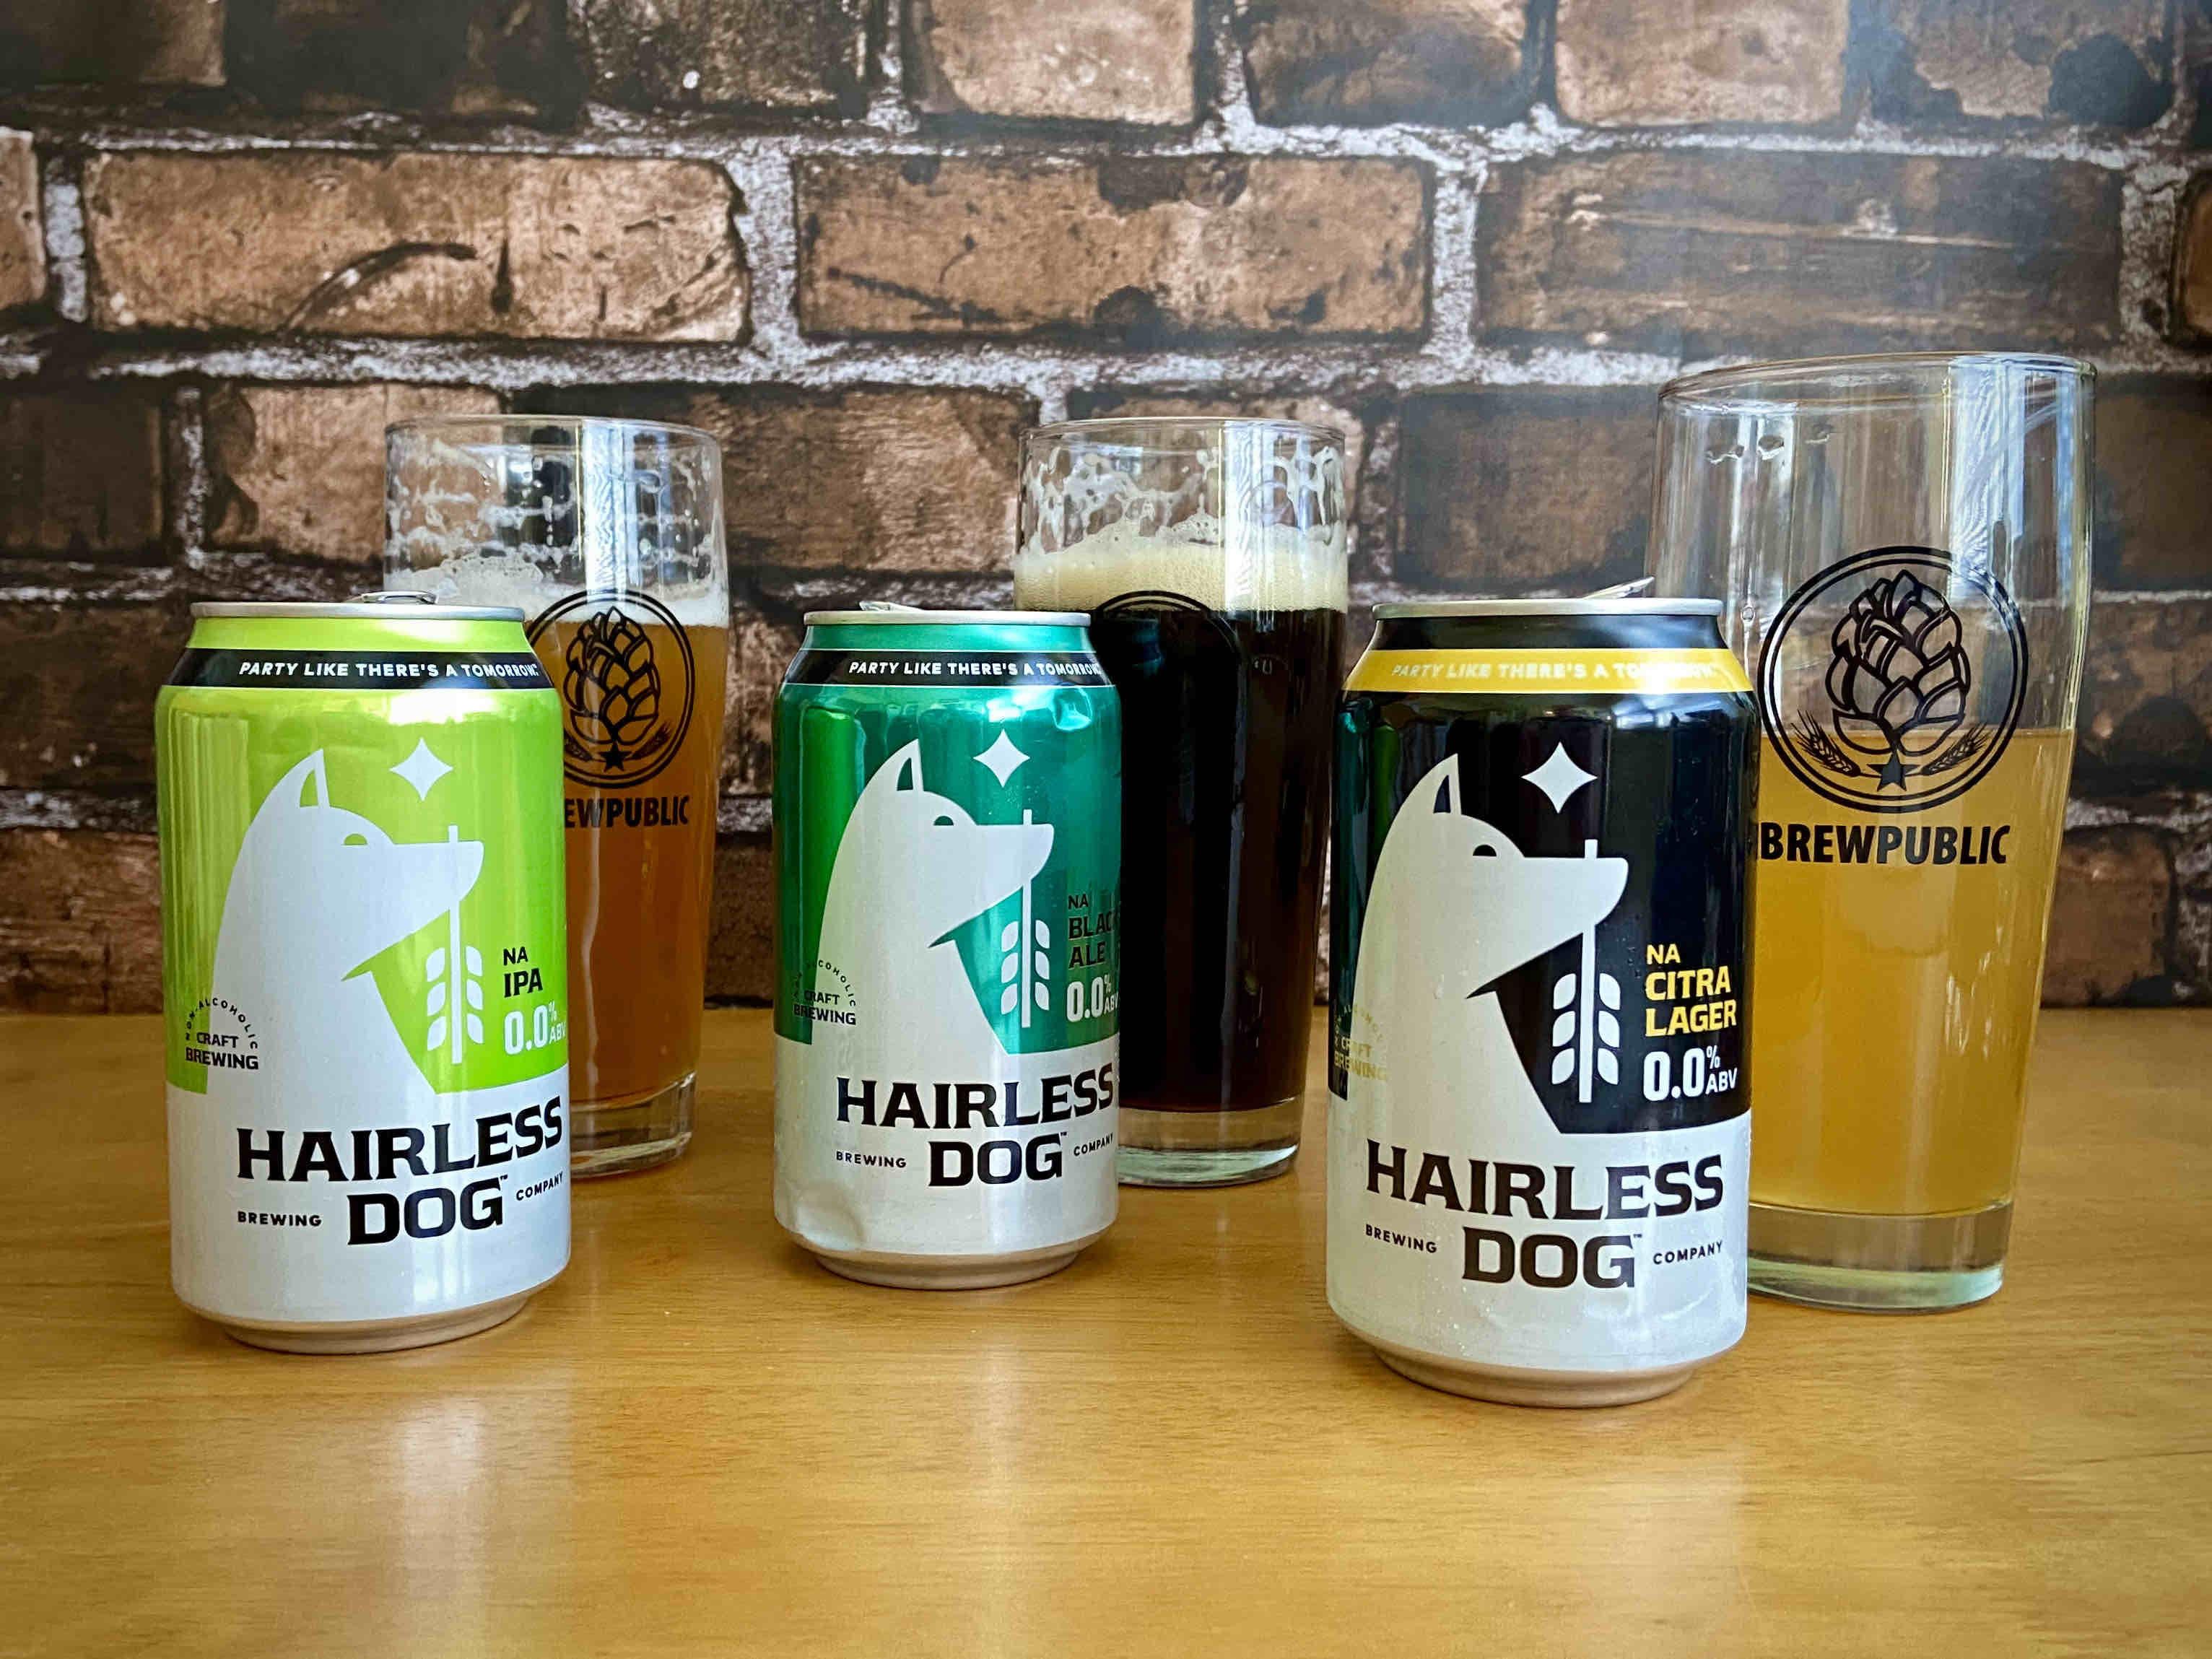 Hairless Dog Brewing has released a lineup of 0.0% ABV beers that includes Citra Lager, IPA, and Black Ale.